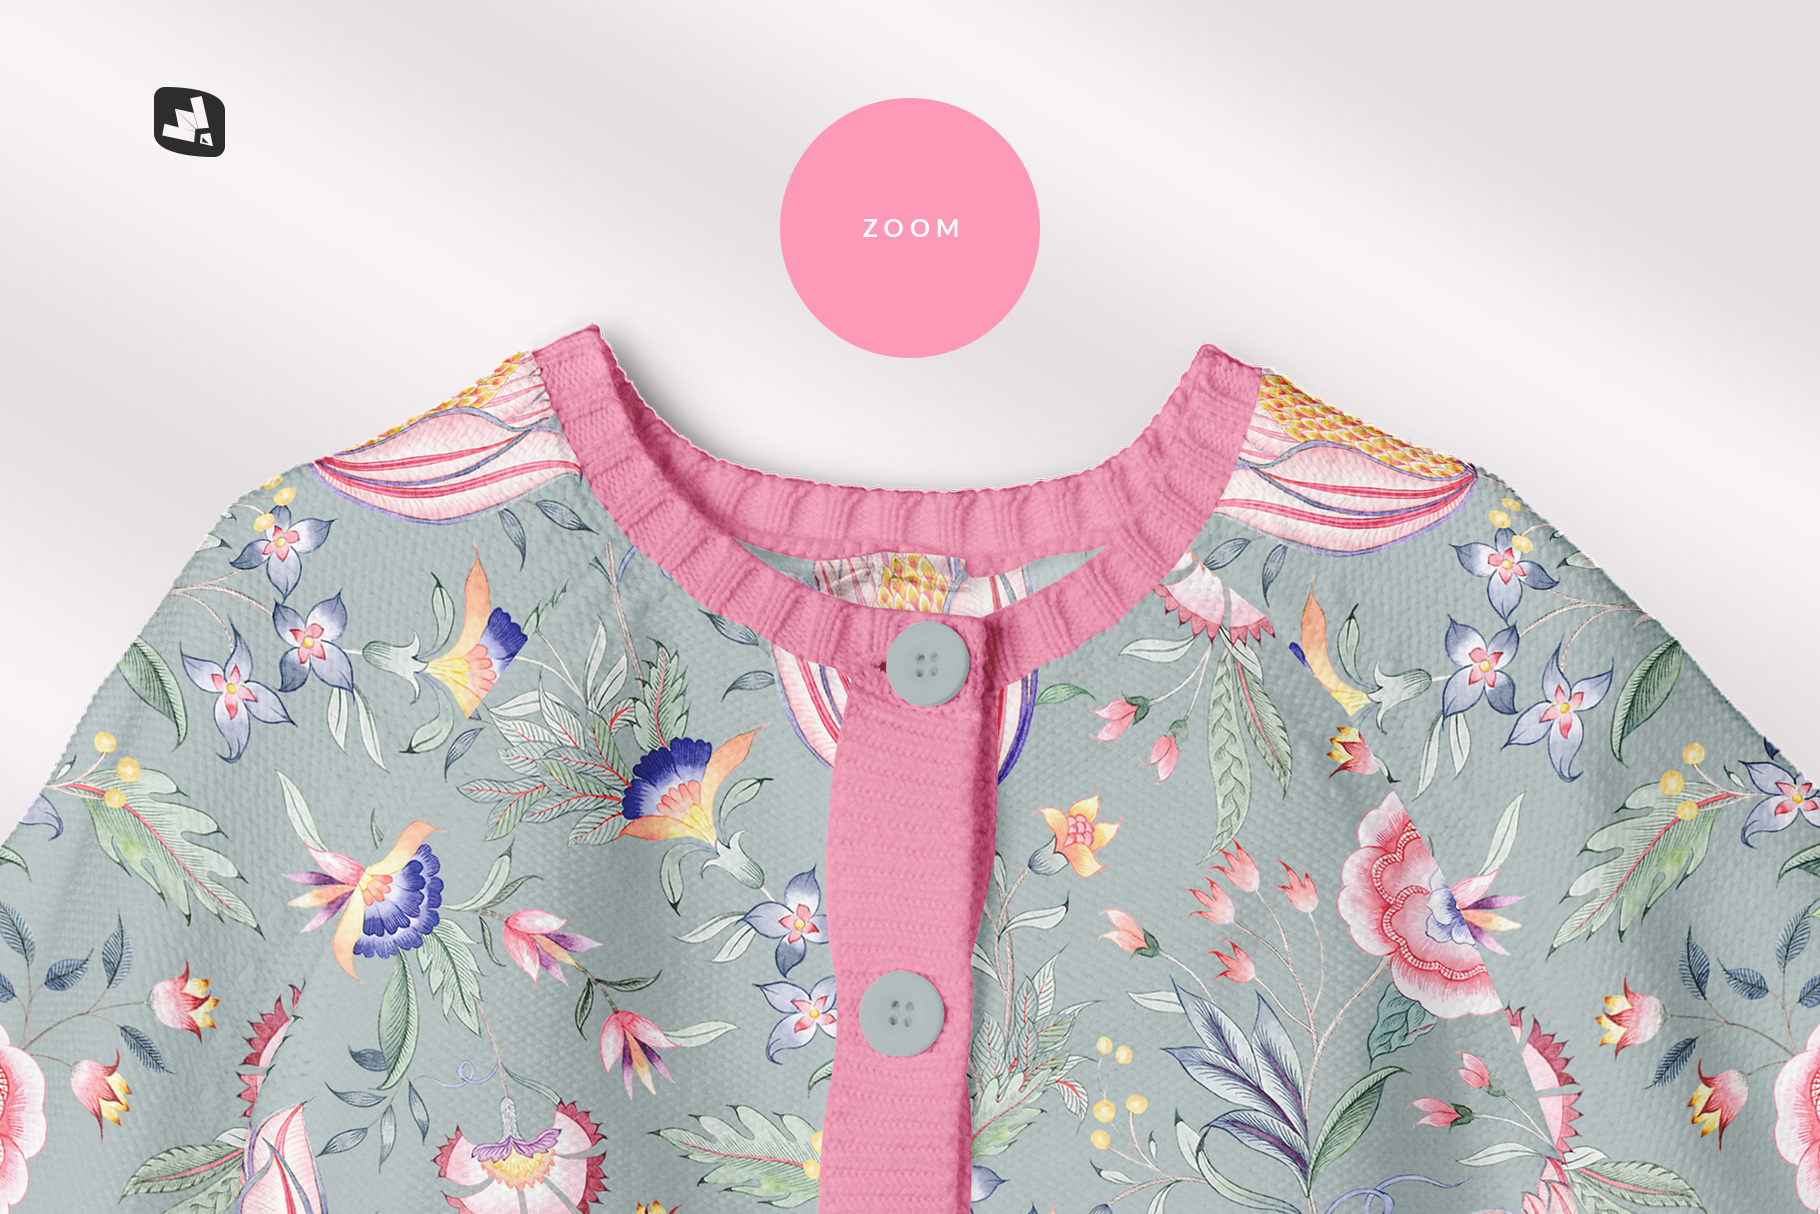 zoomed in image of the top view baby sweater mockup